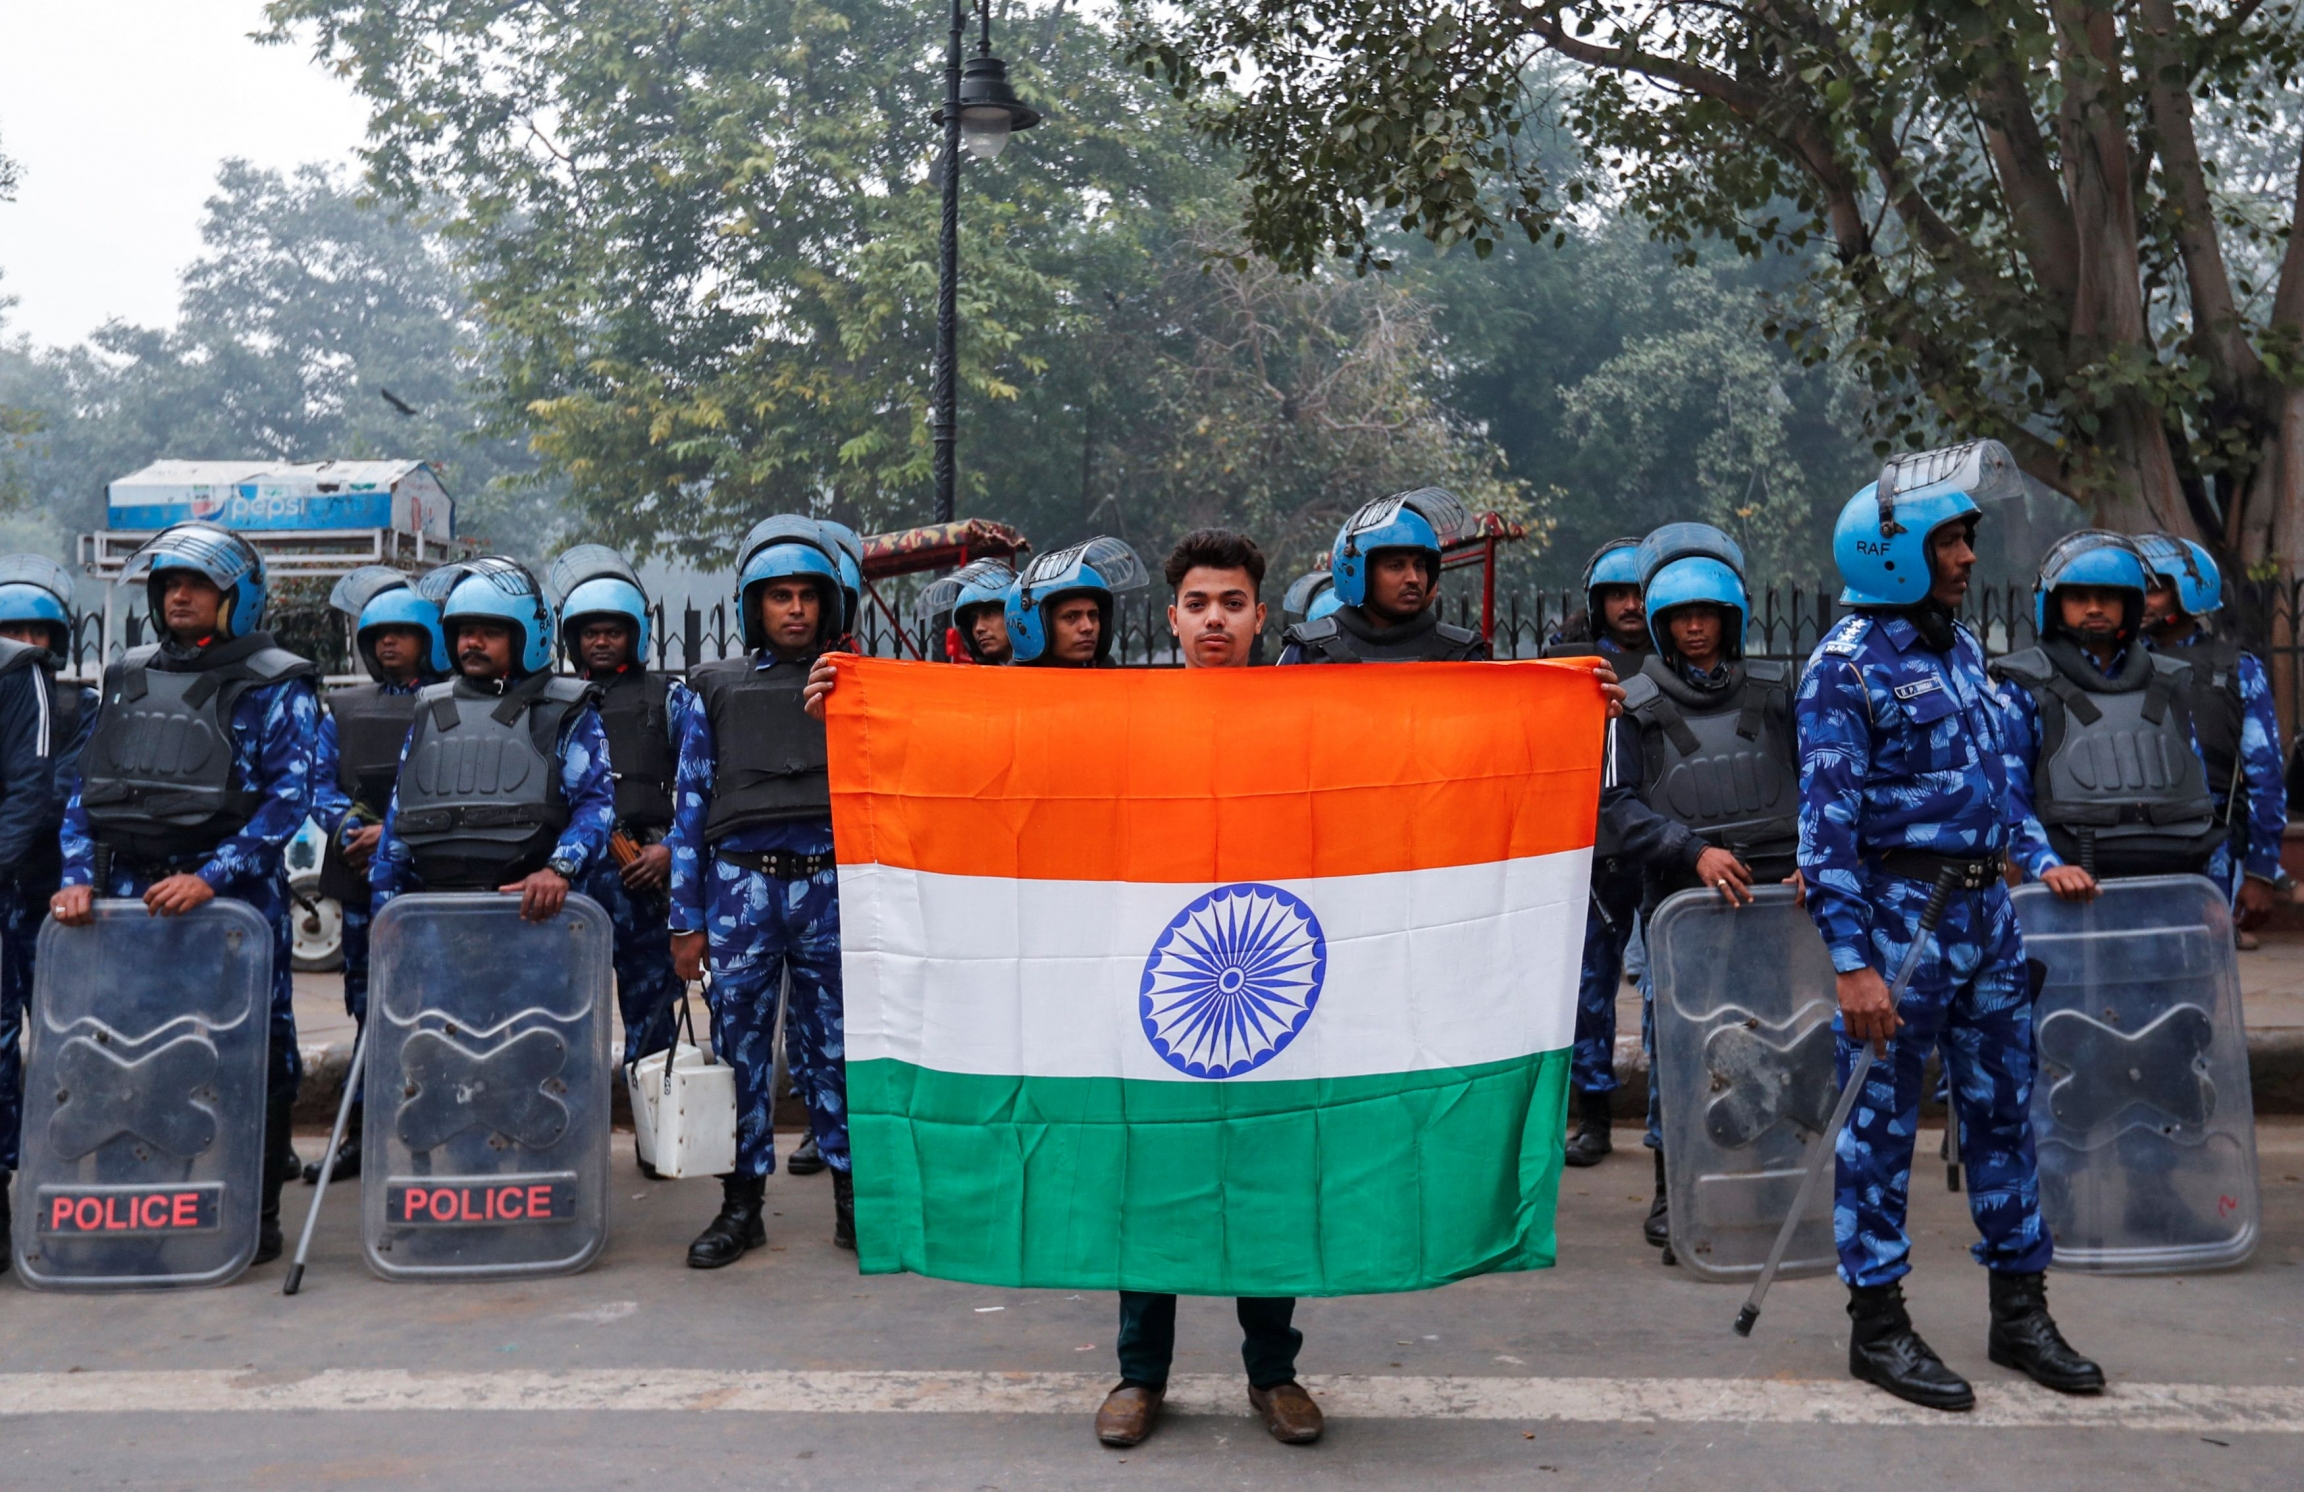 A man holds Indian flag in front of police wearing blue uniforms.